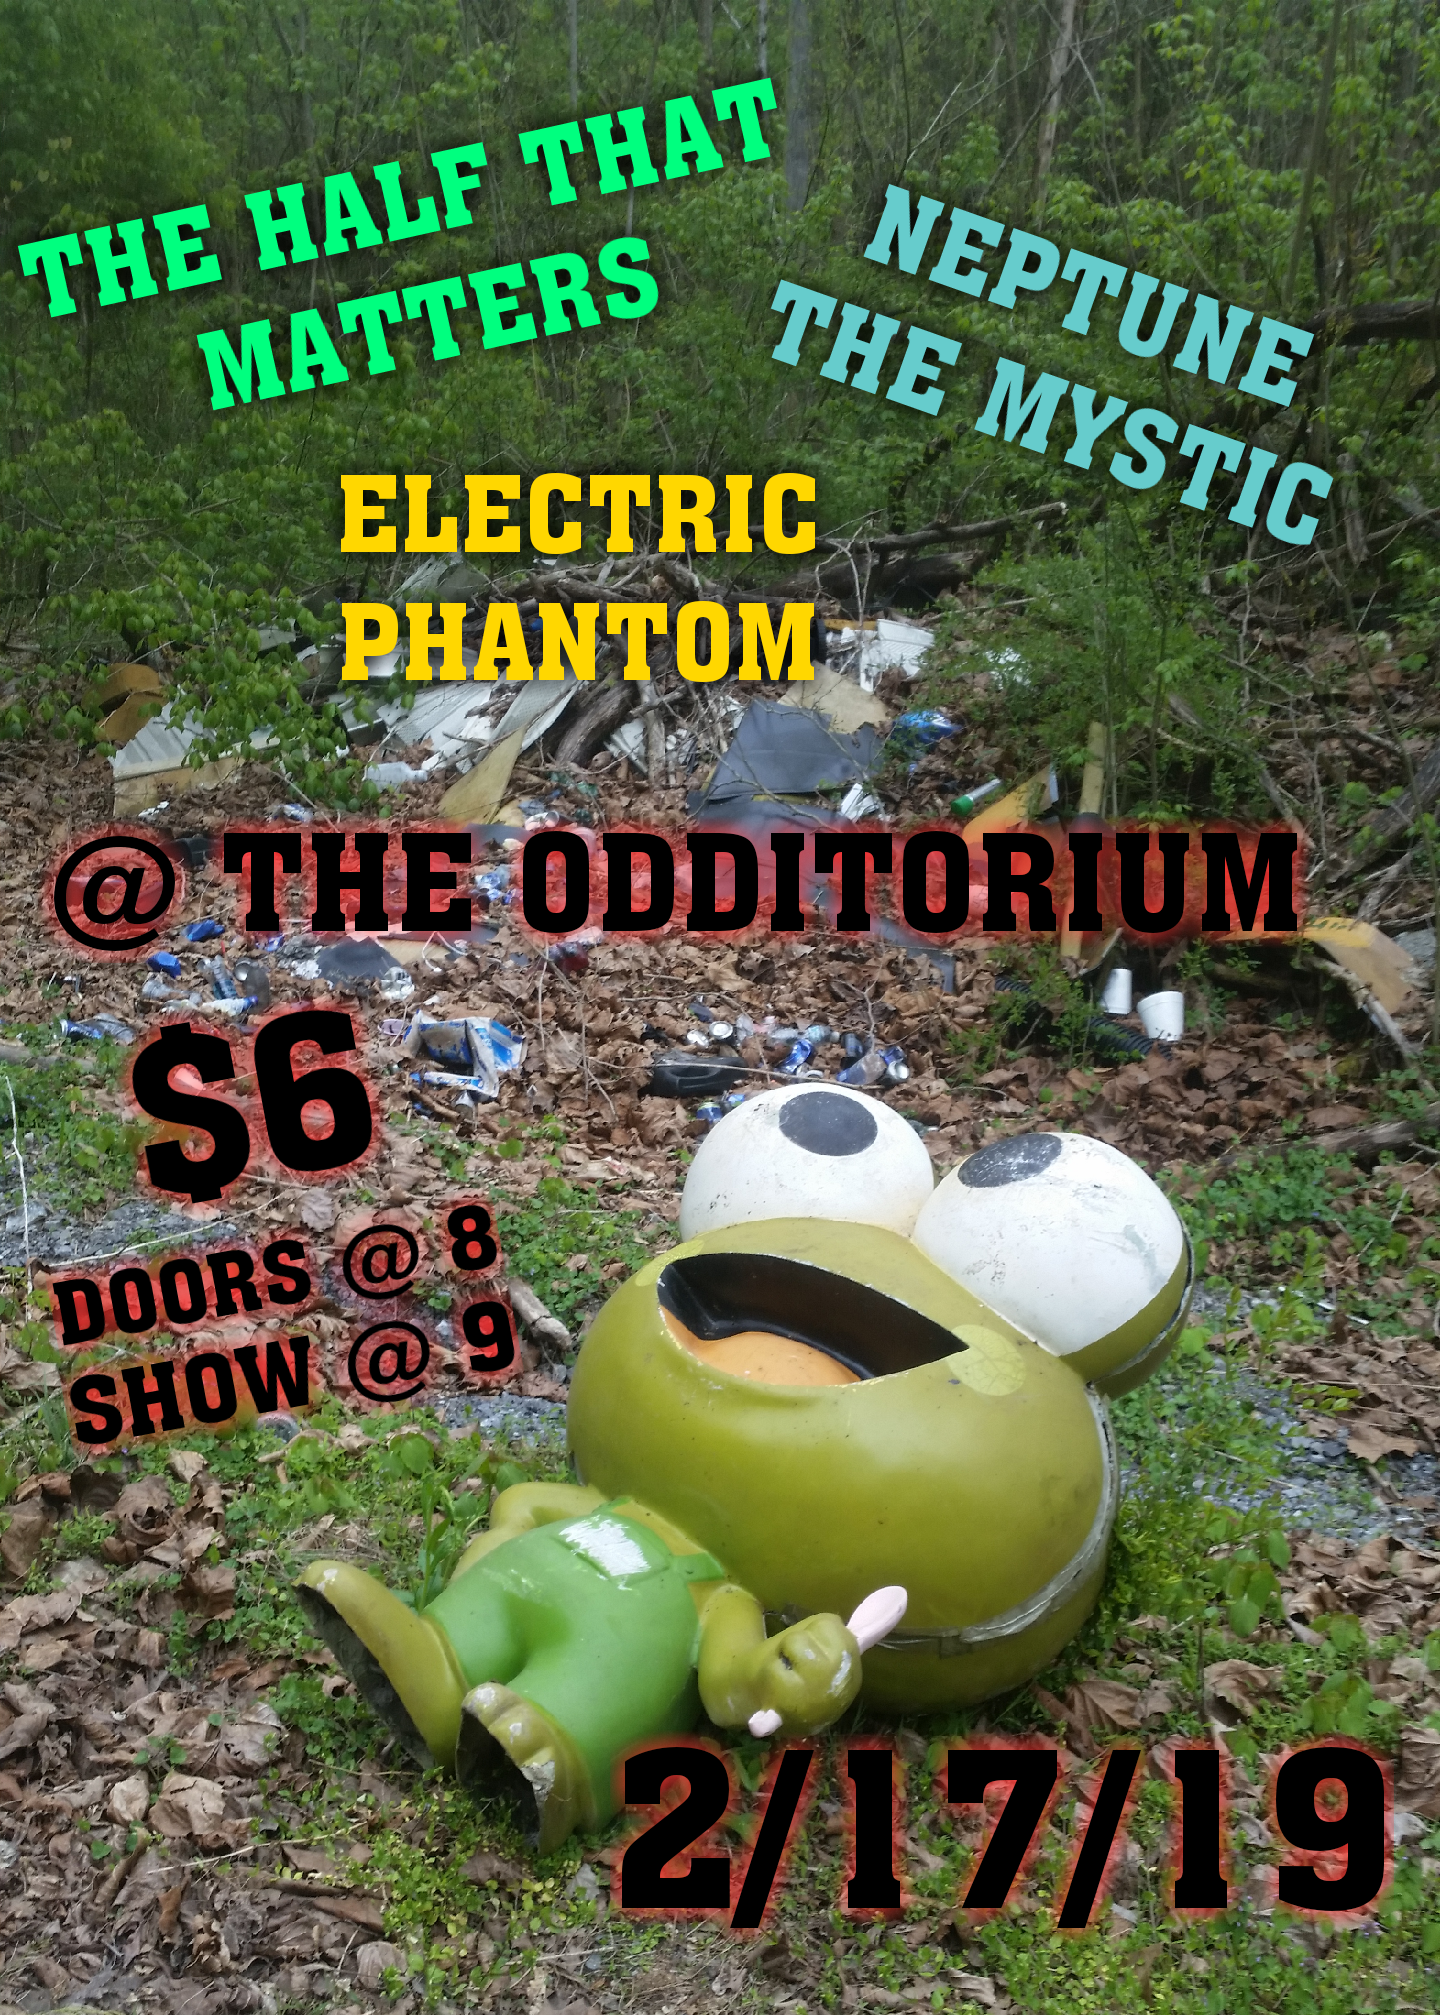 The Odditorium show flyer